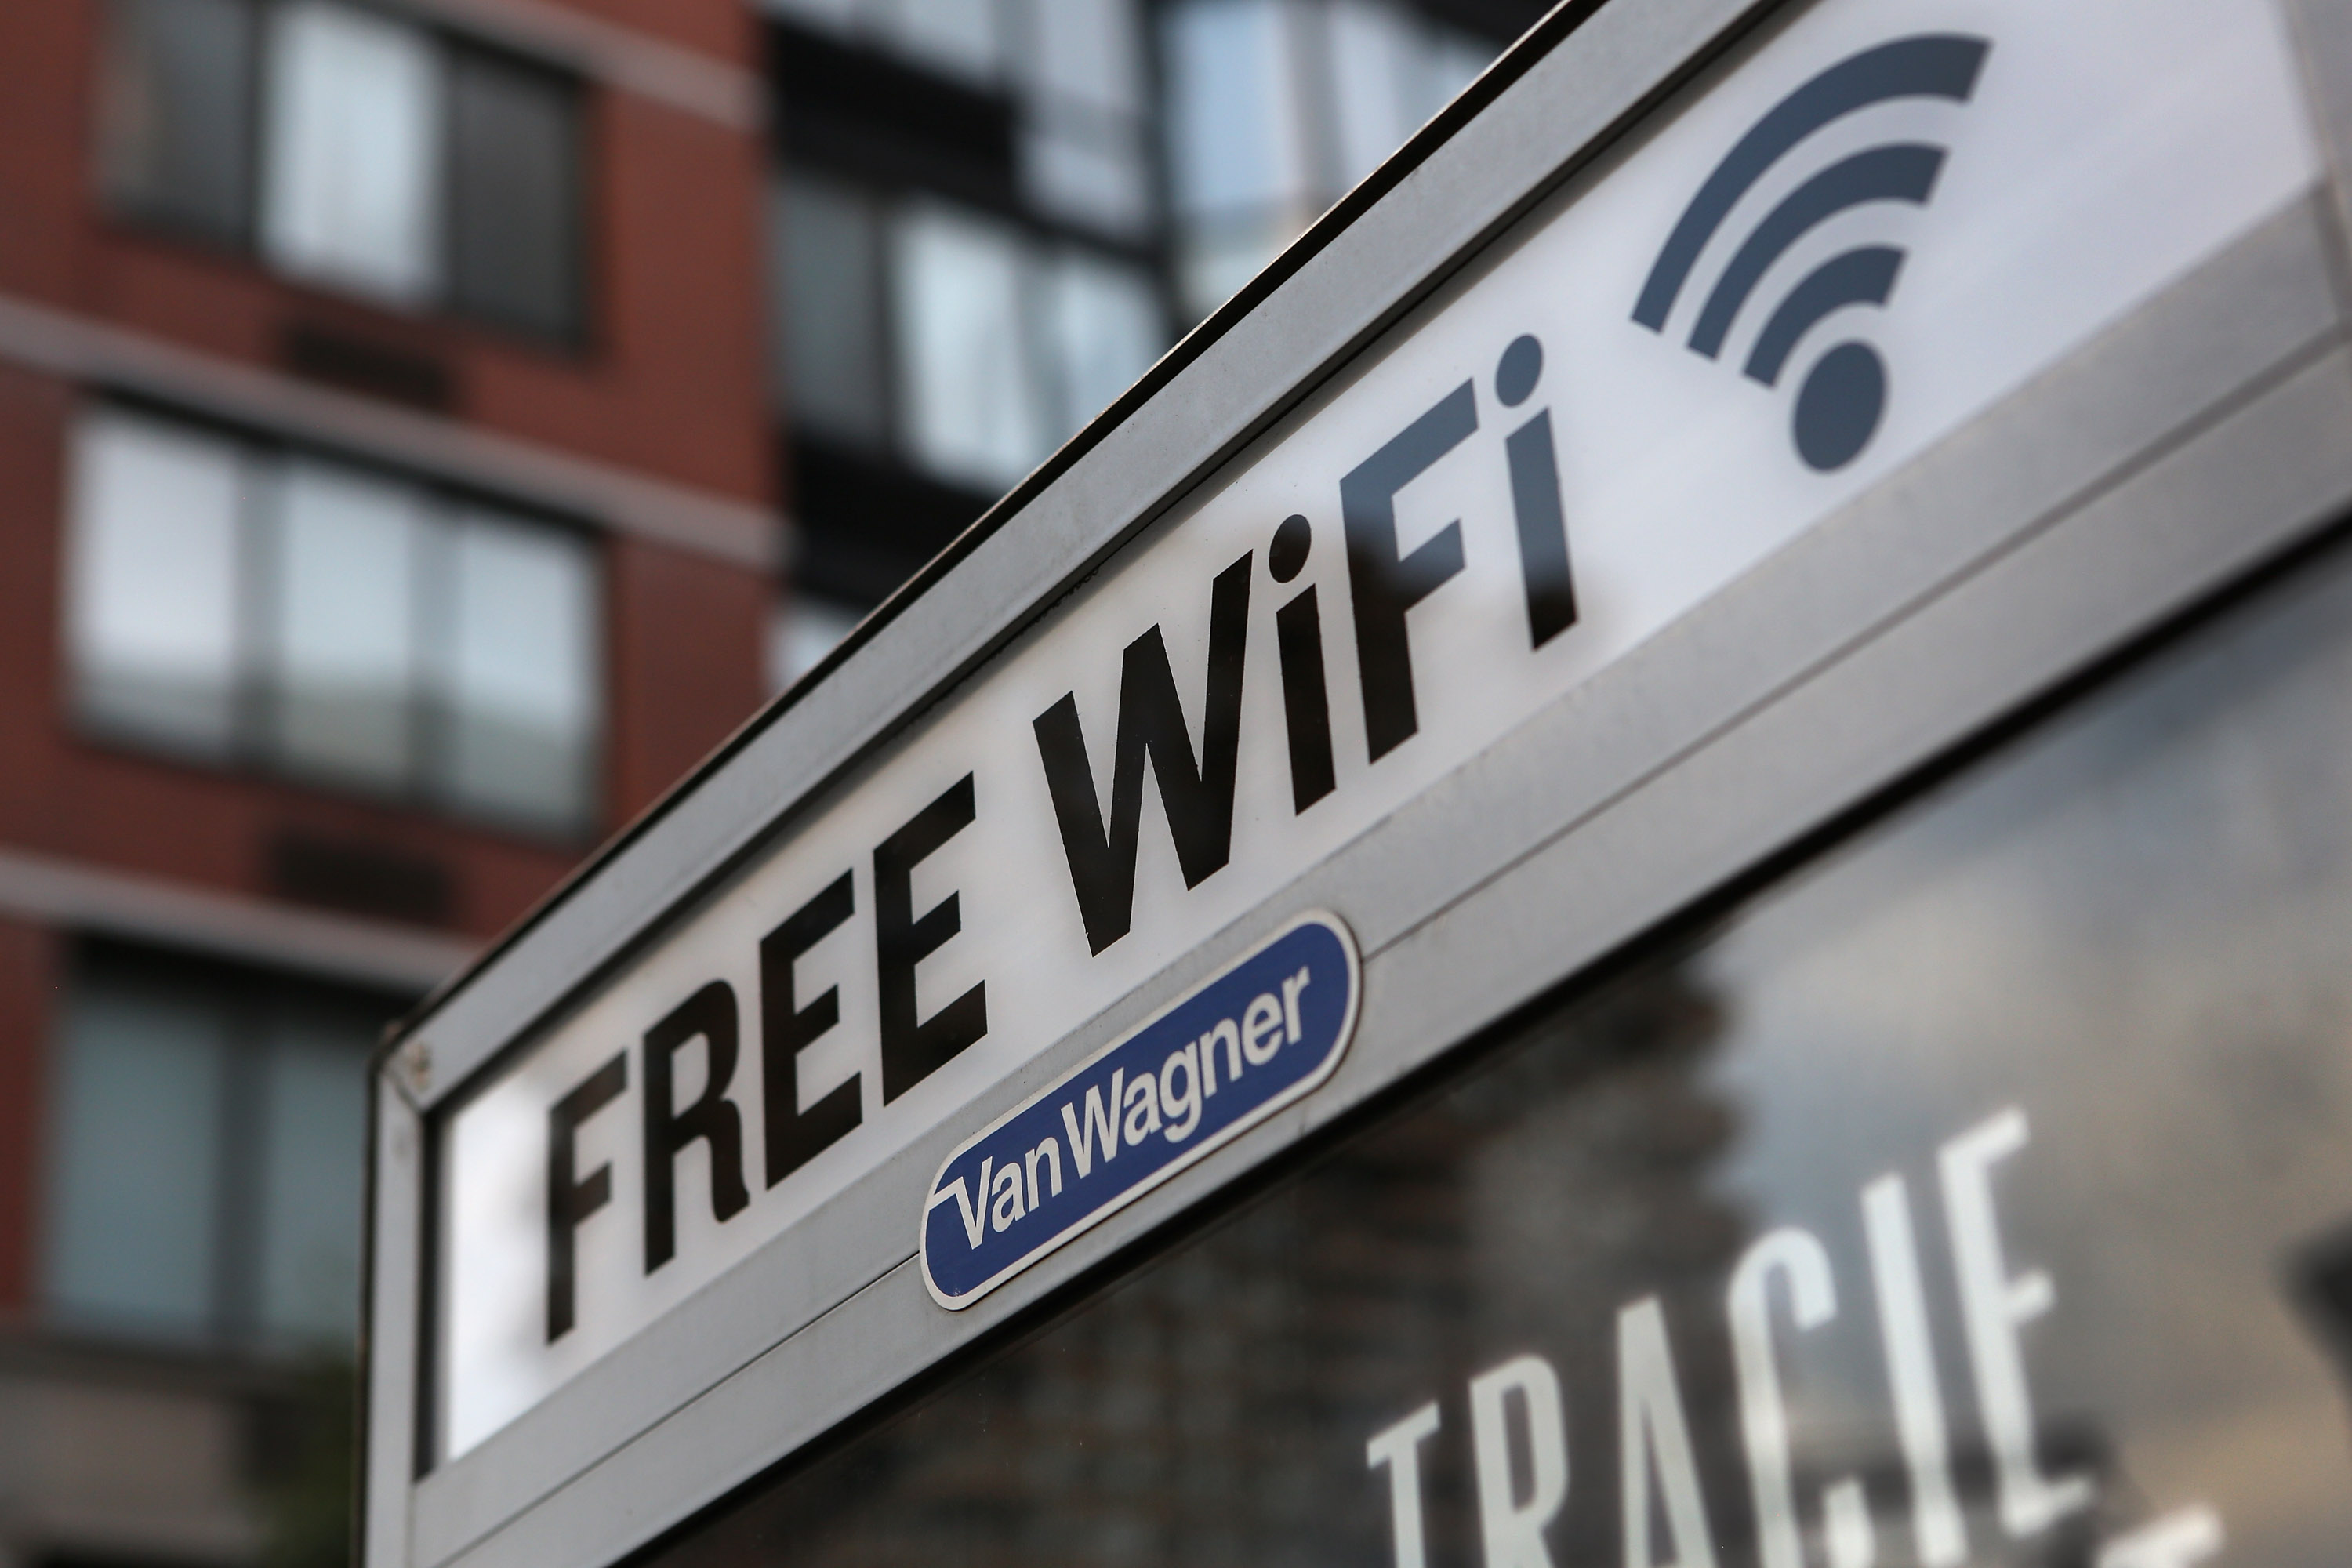 A free Wi-Fi hotspot beams broadband internet from atop a public phone booth on July 11, 2012 in Manhattan, New York City.